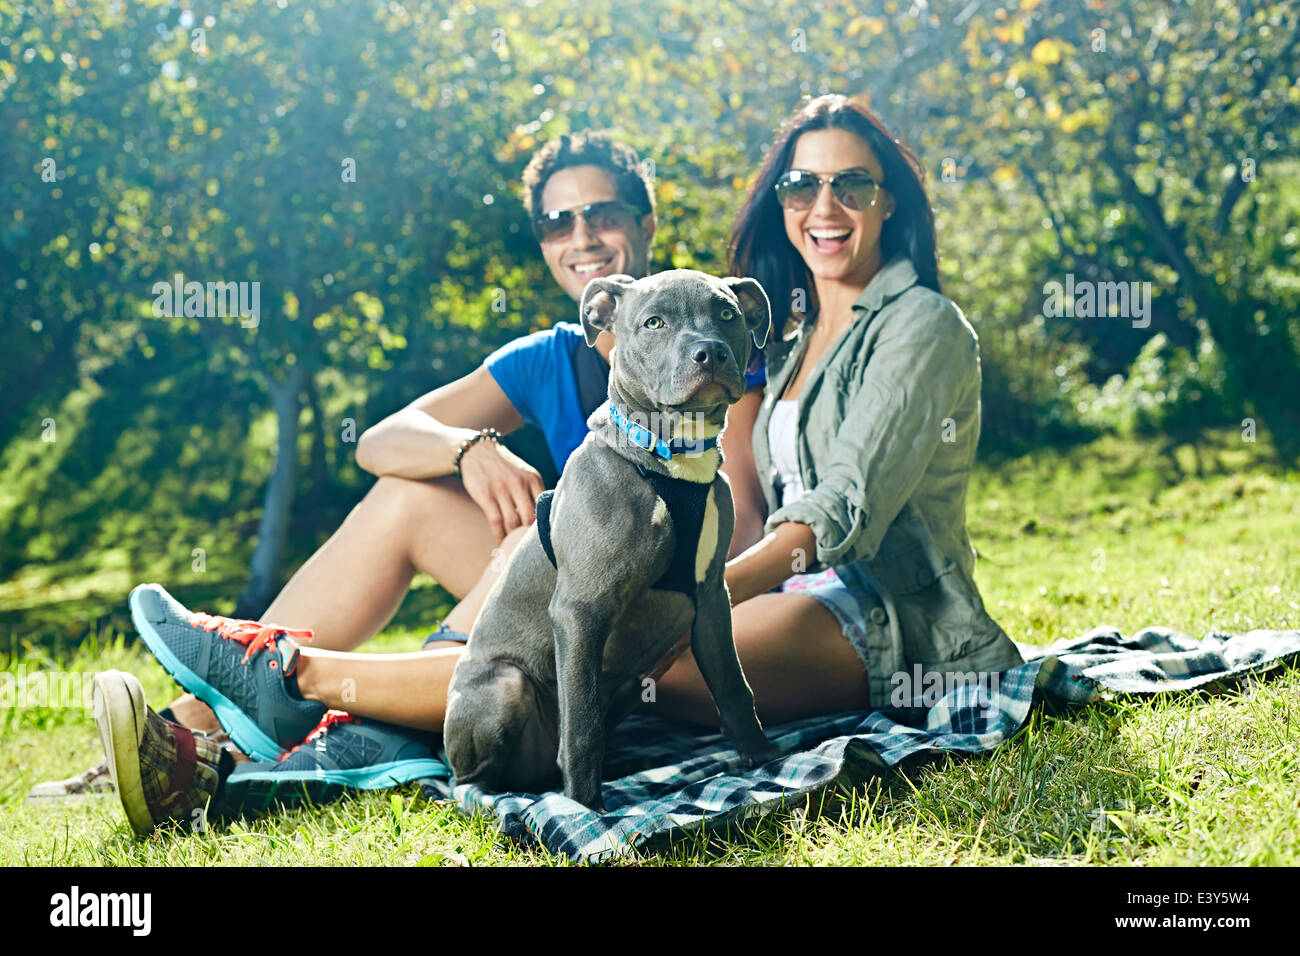 Portrait of couple and dog sitting on picnic blanket in park - Stock Image